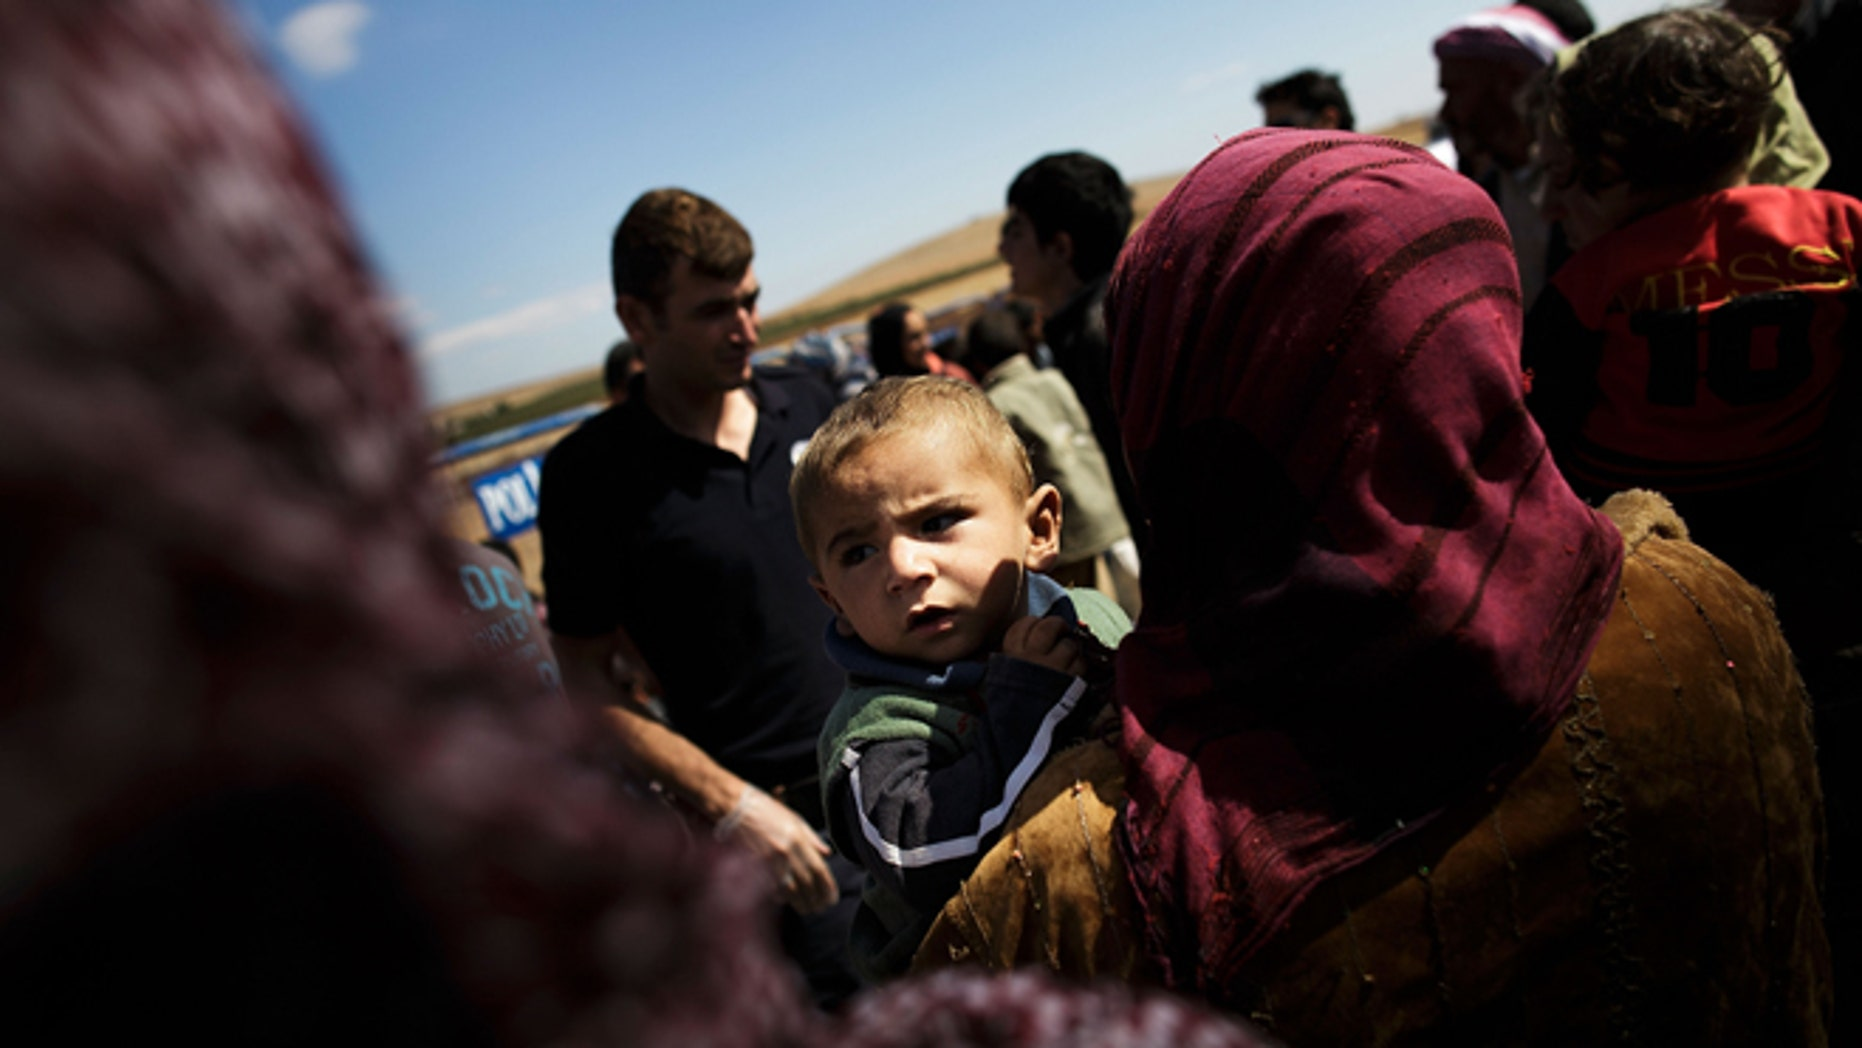 SANLIURFA, TURKEY - SEPTEMBER 30:  A woman holds a boy as refugees cross the border from Syria into Turkey September 30, 2014 near Suruc, Turkey. (Photo by Carsten Koall/Getty Images)